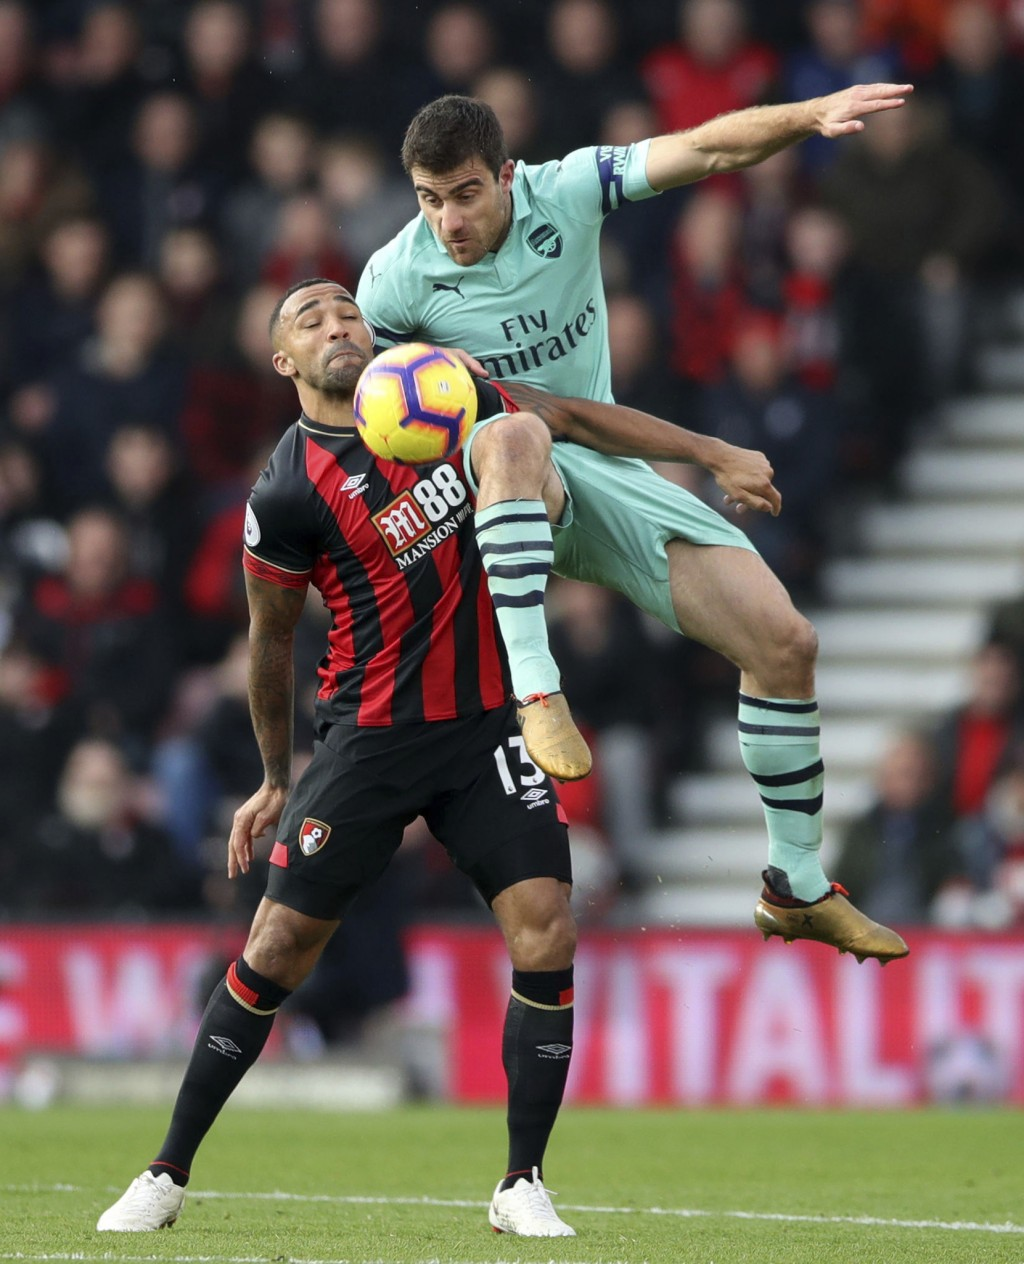 Arsenal's Sokratis Papastathopoulos, top, and Bournemouth's Callum Wilson in action during their English Premier League soccer match at The Vitality S